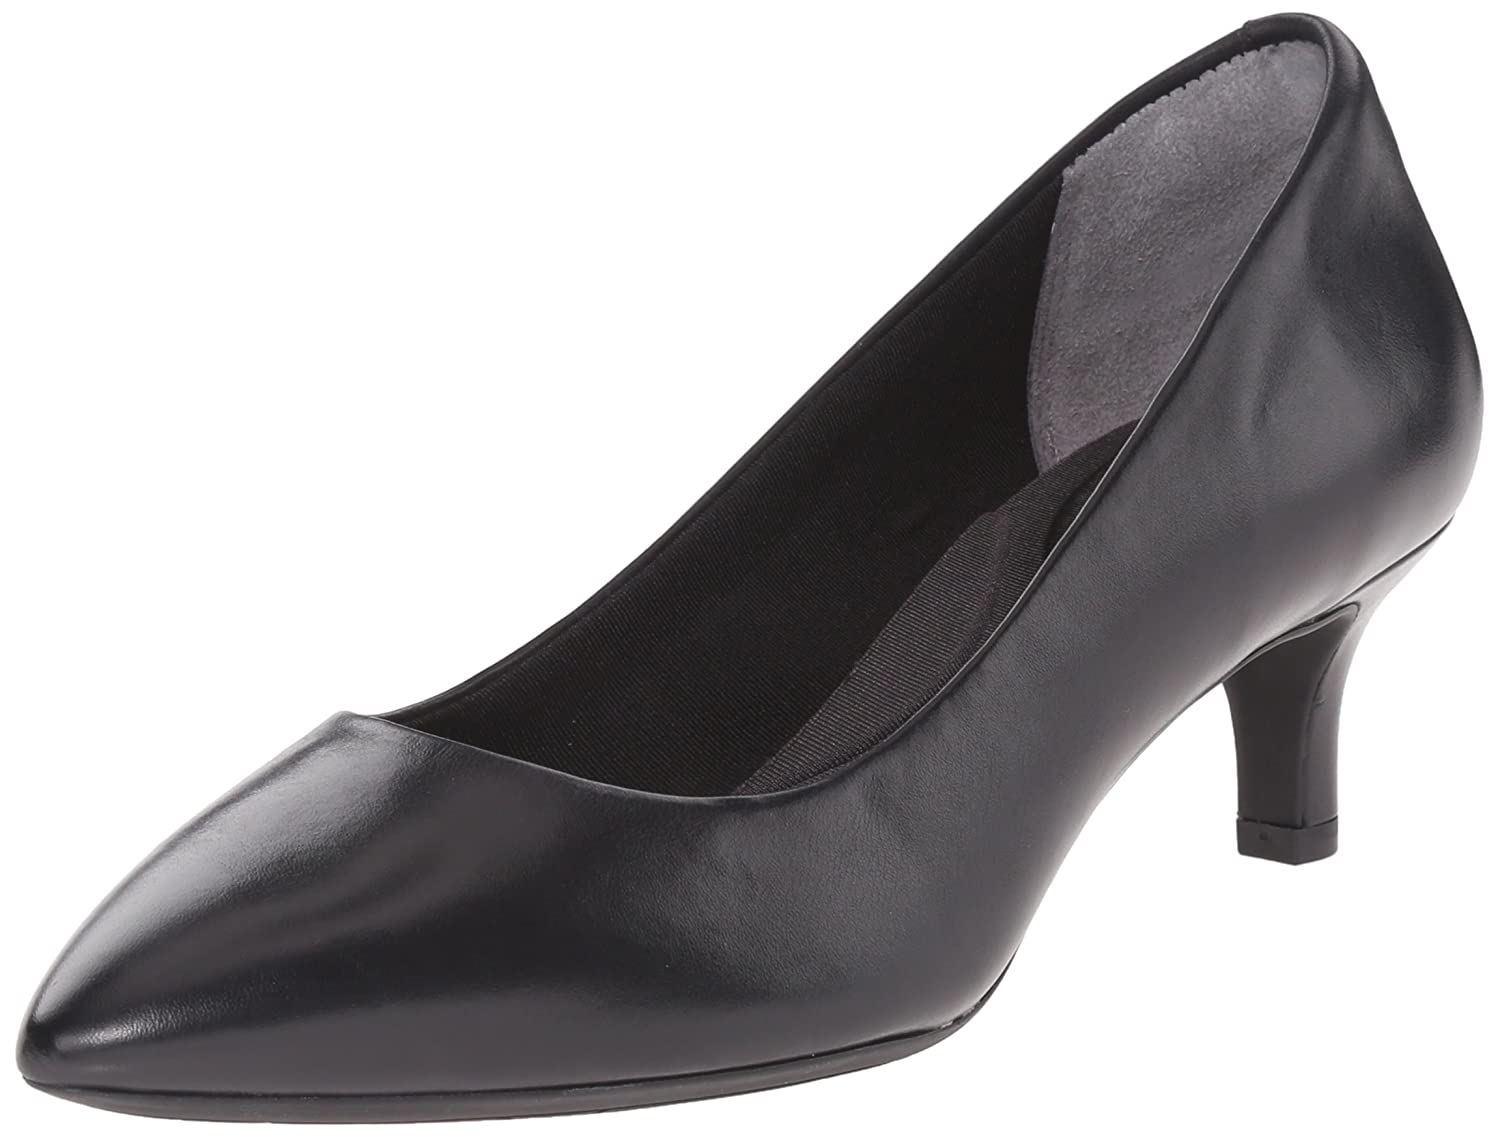 schwarz Calf Rockport damen& 039;s Total Motion Kalila Dress Pump